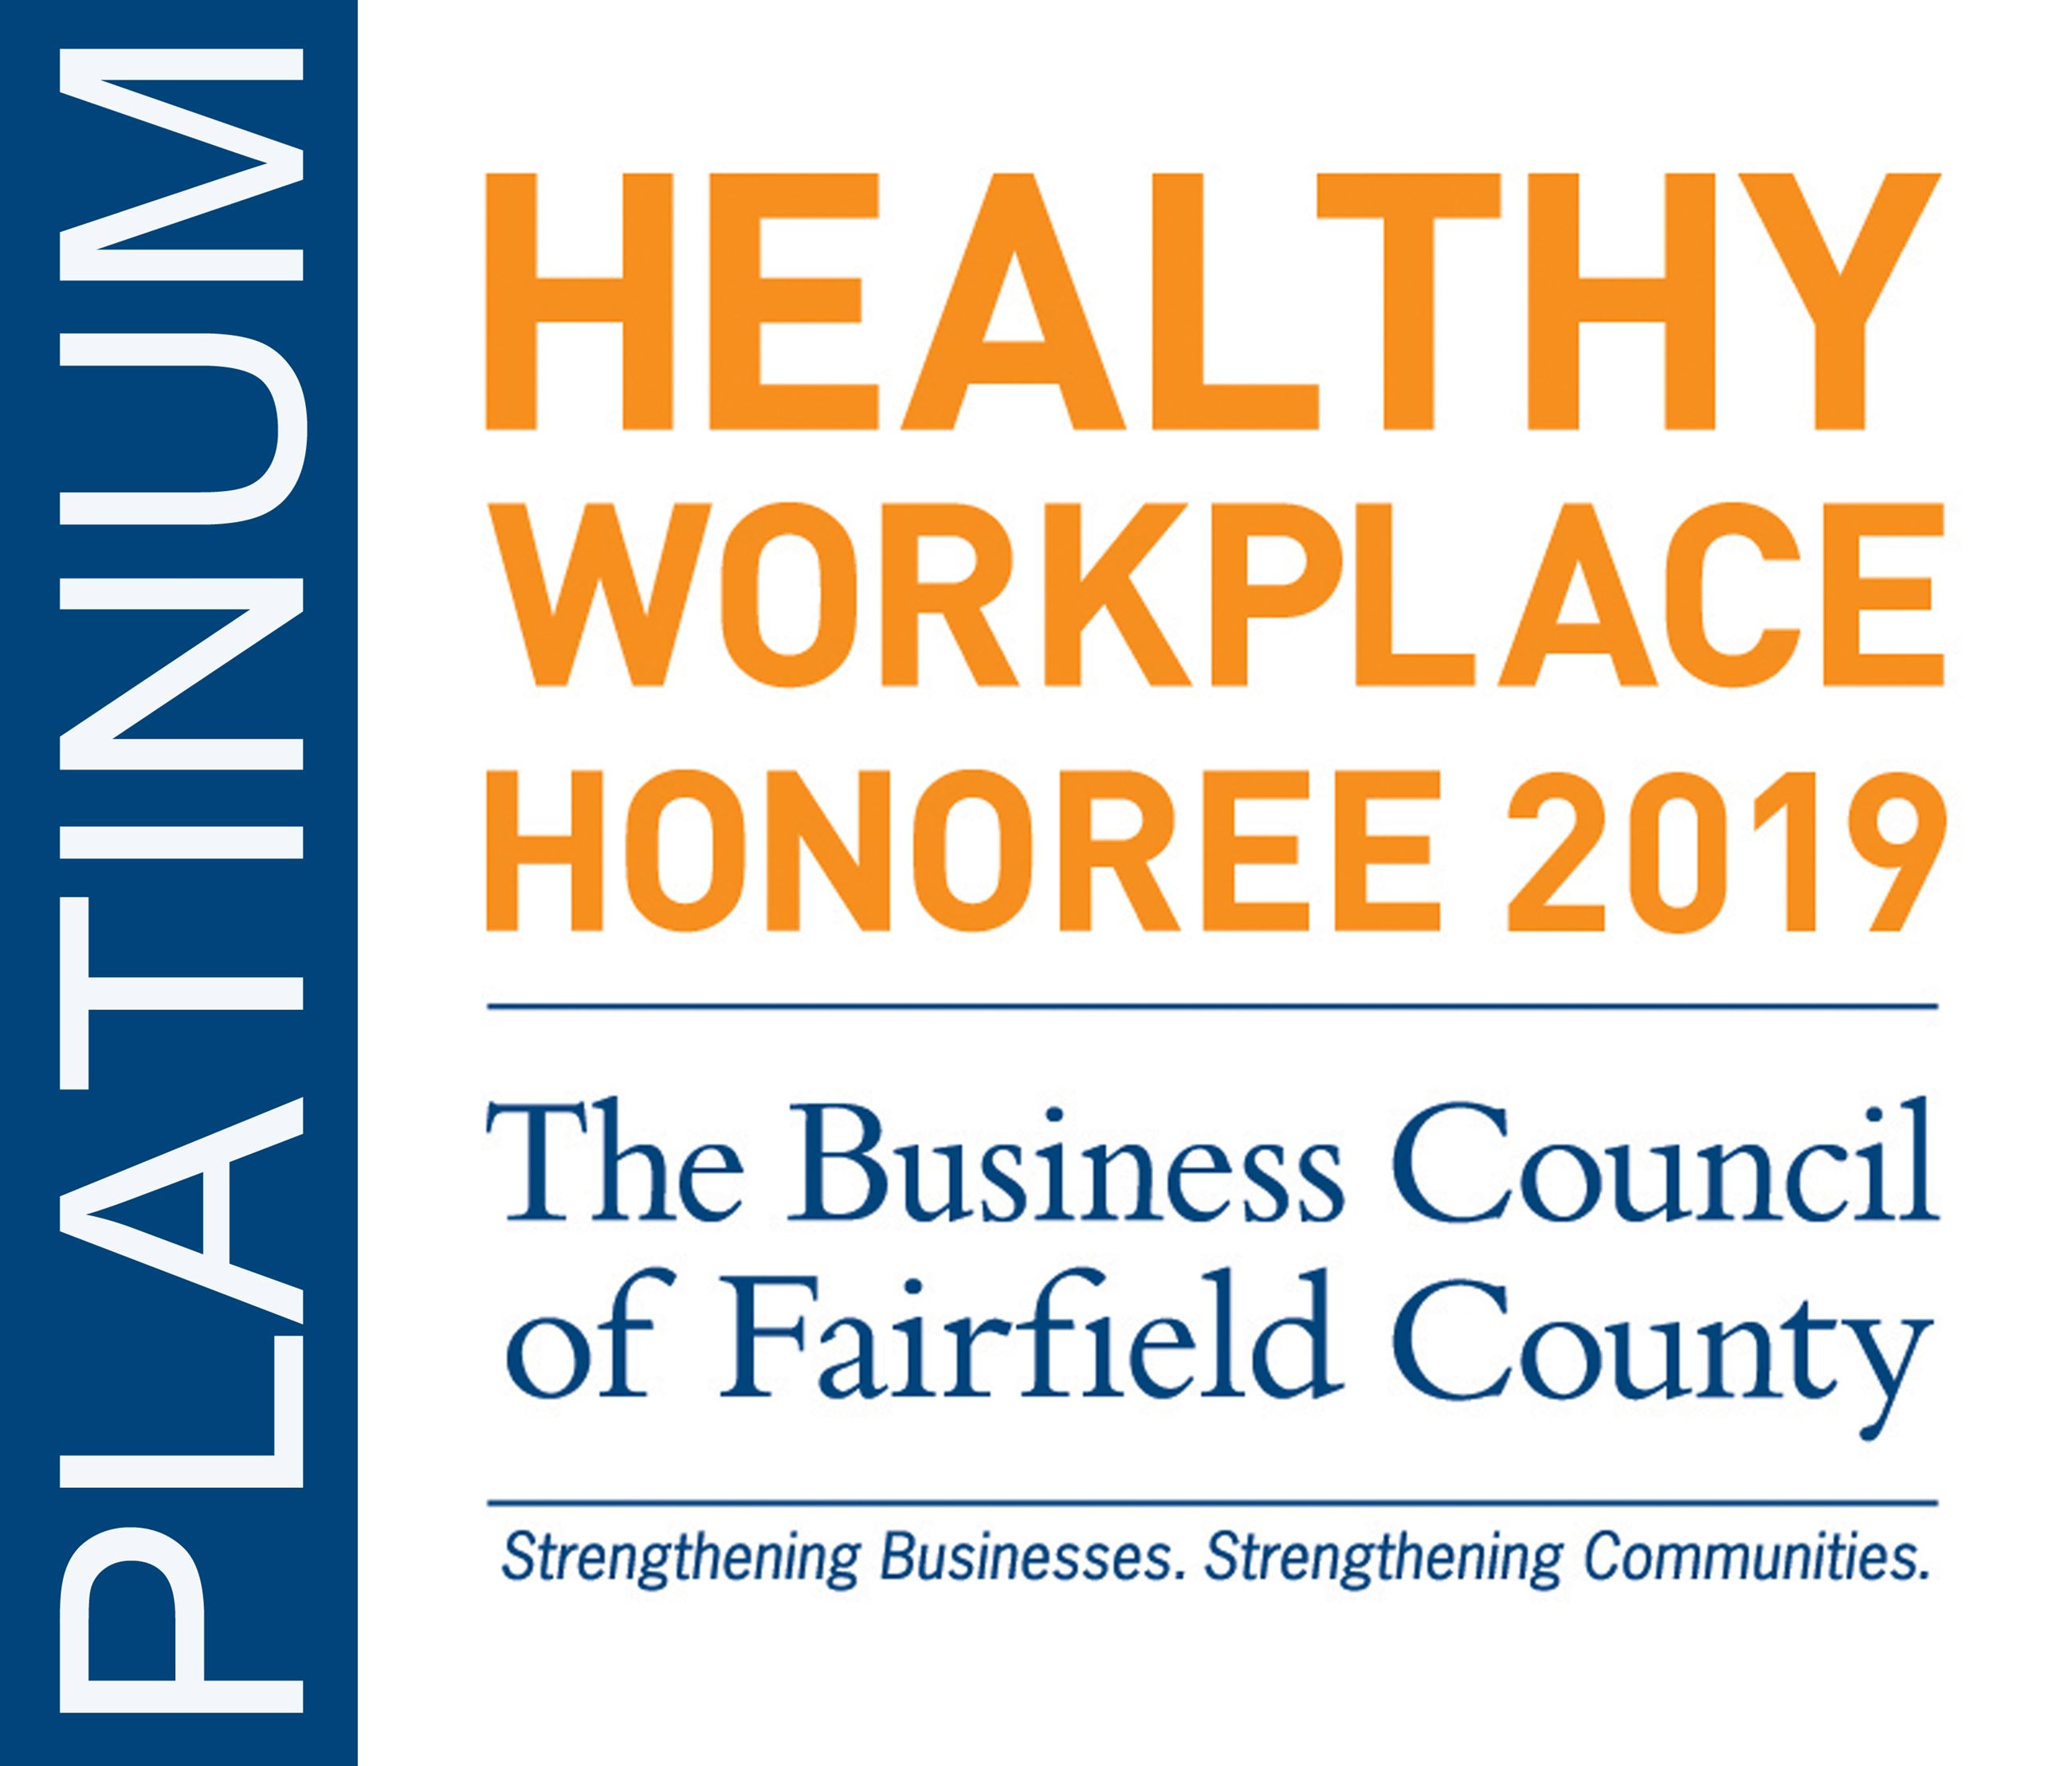 Healthy Workplace 2019 Platinum 300 Award